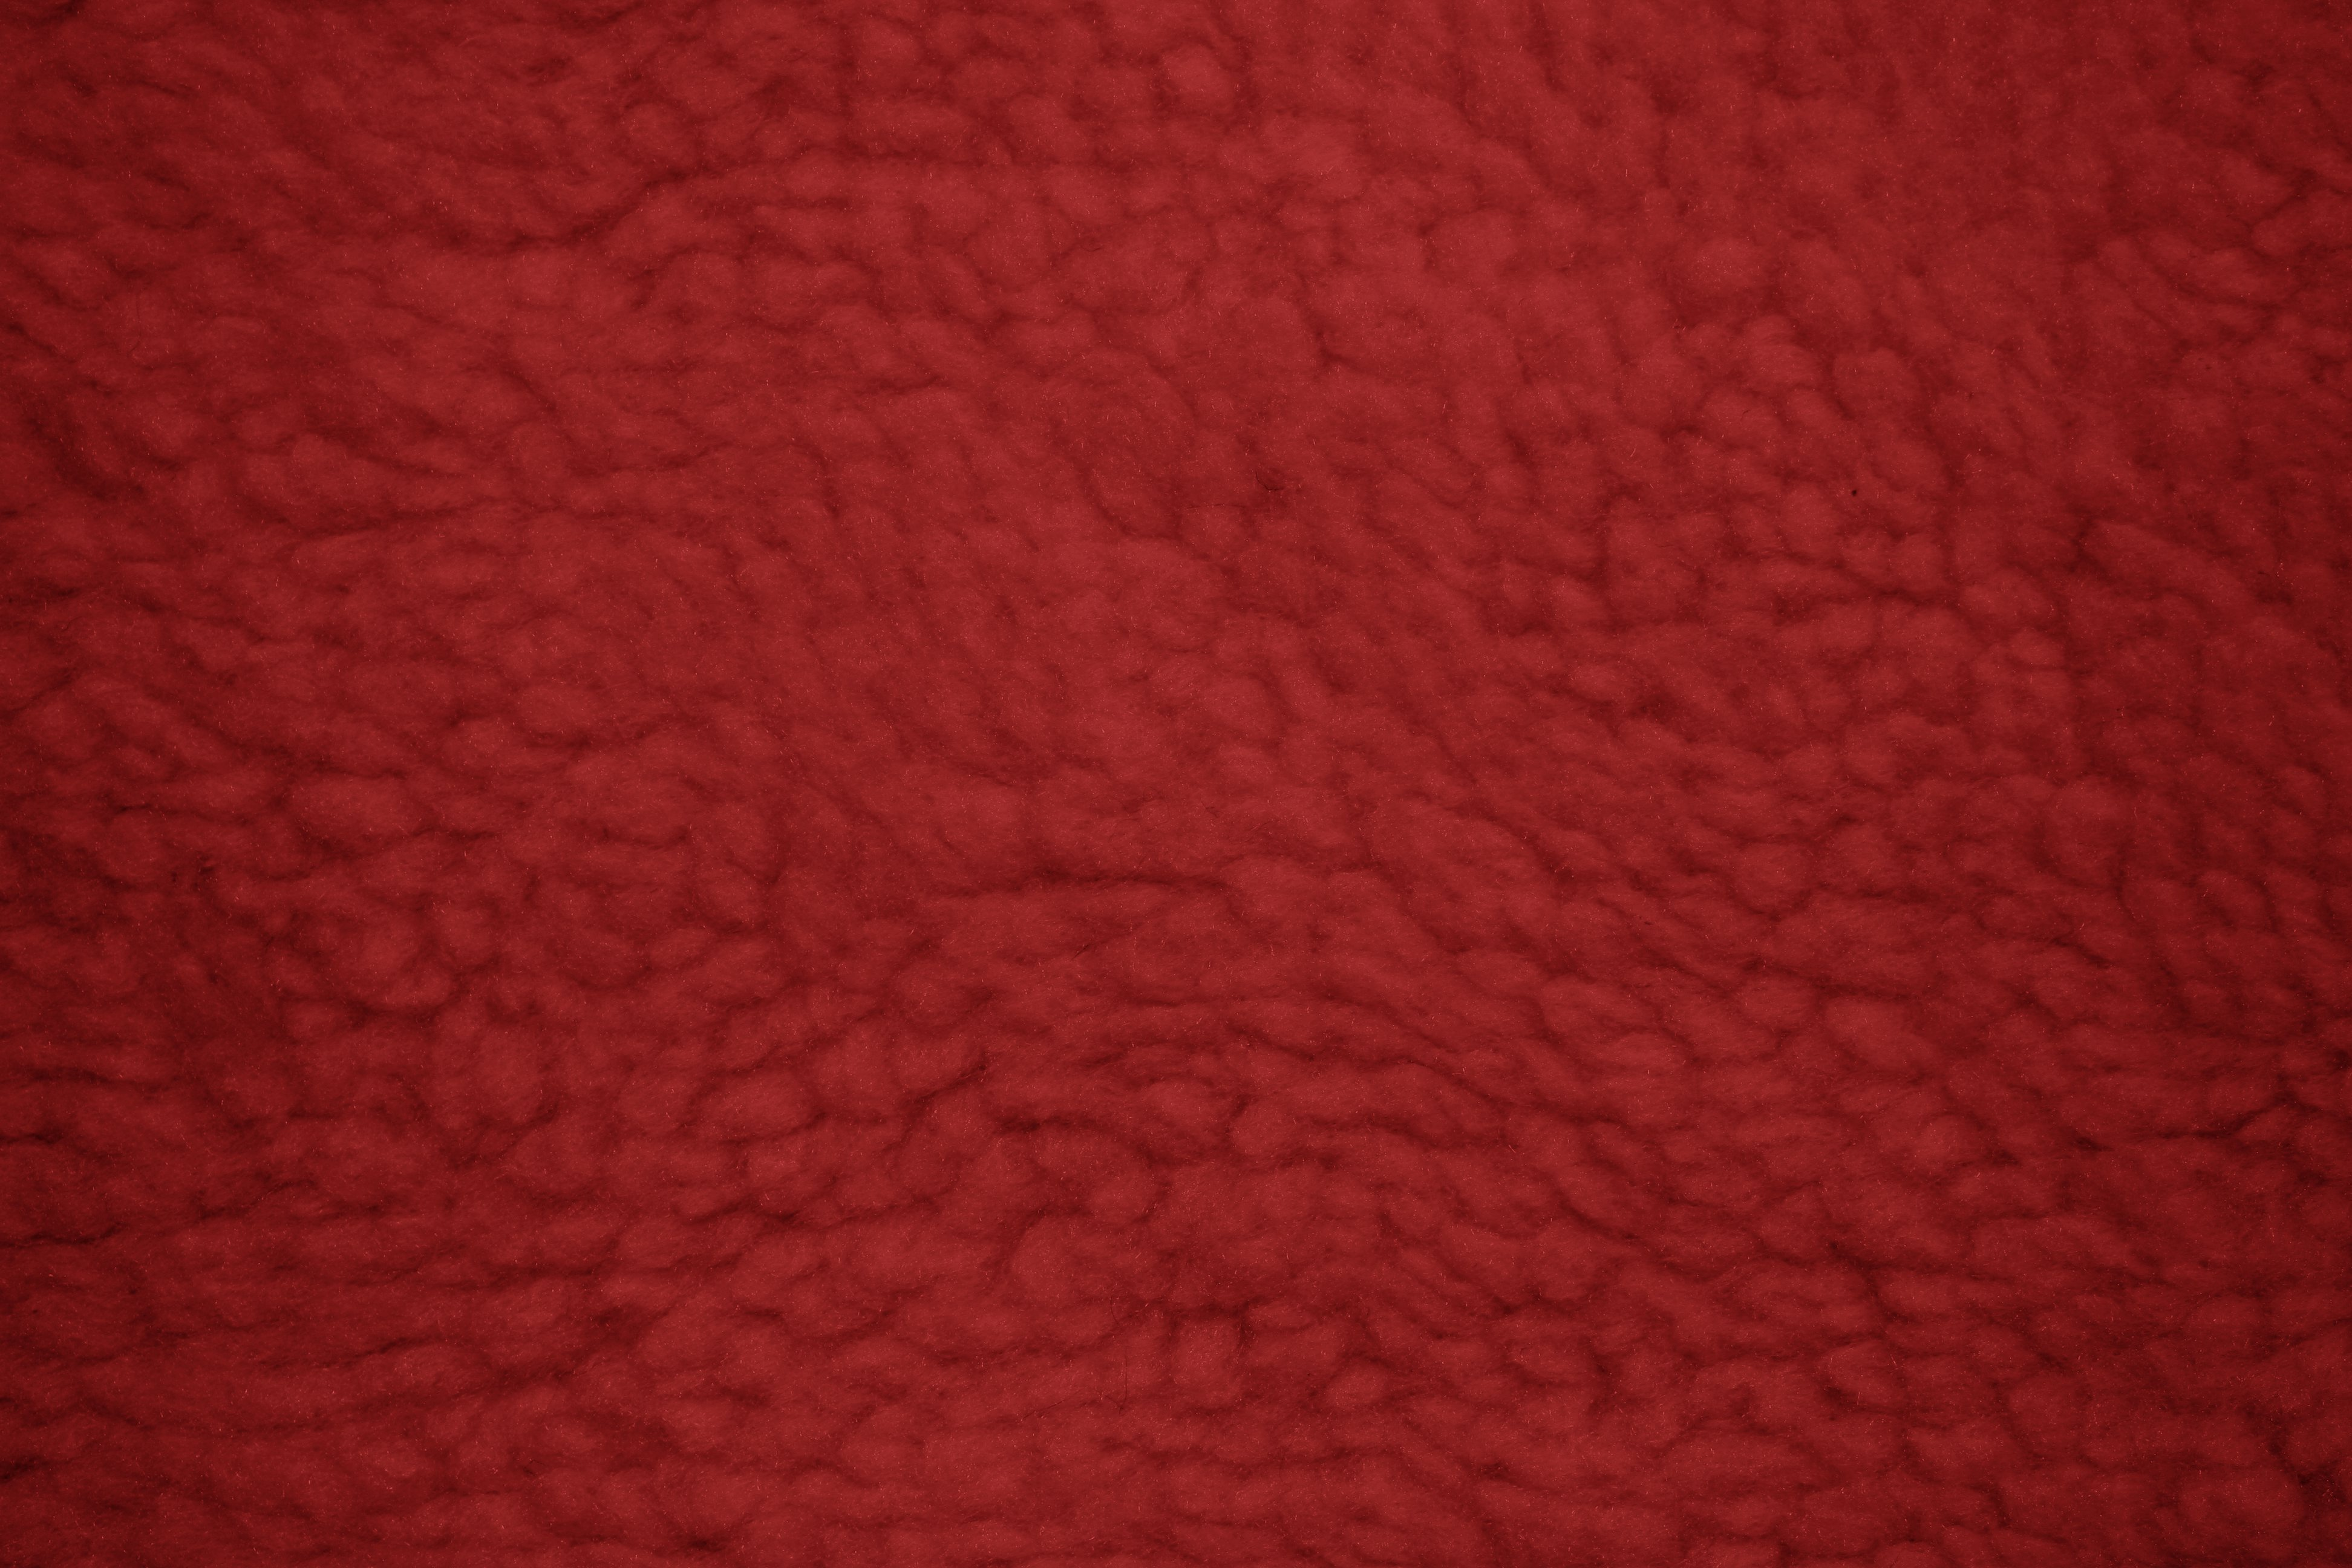 Red Fleece Faux Sherpa Wool Fabric Texture Picture Free Photograph